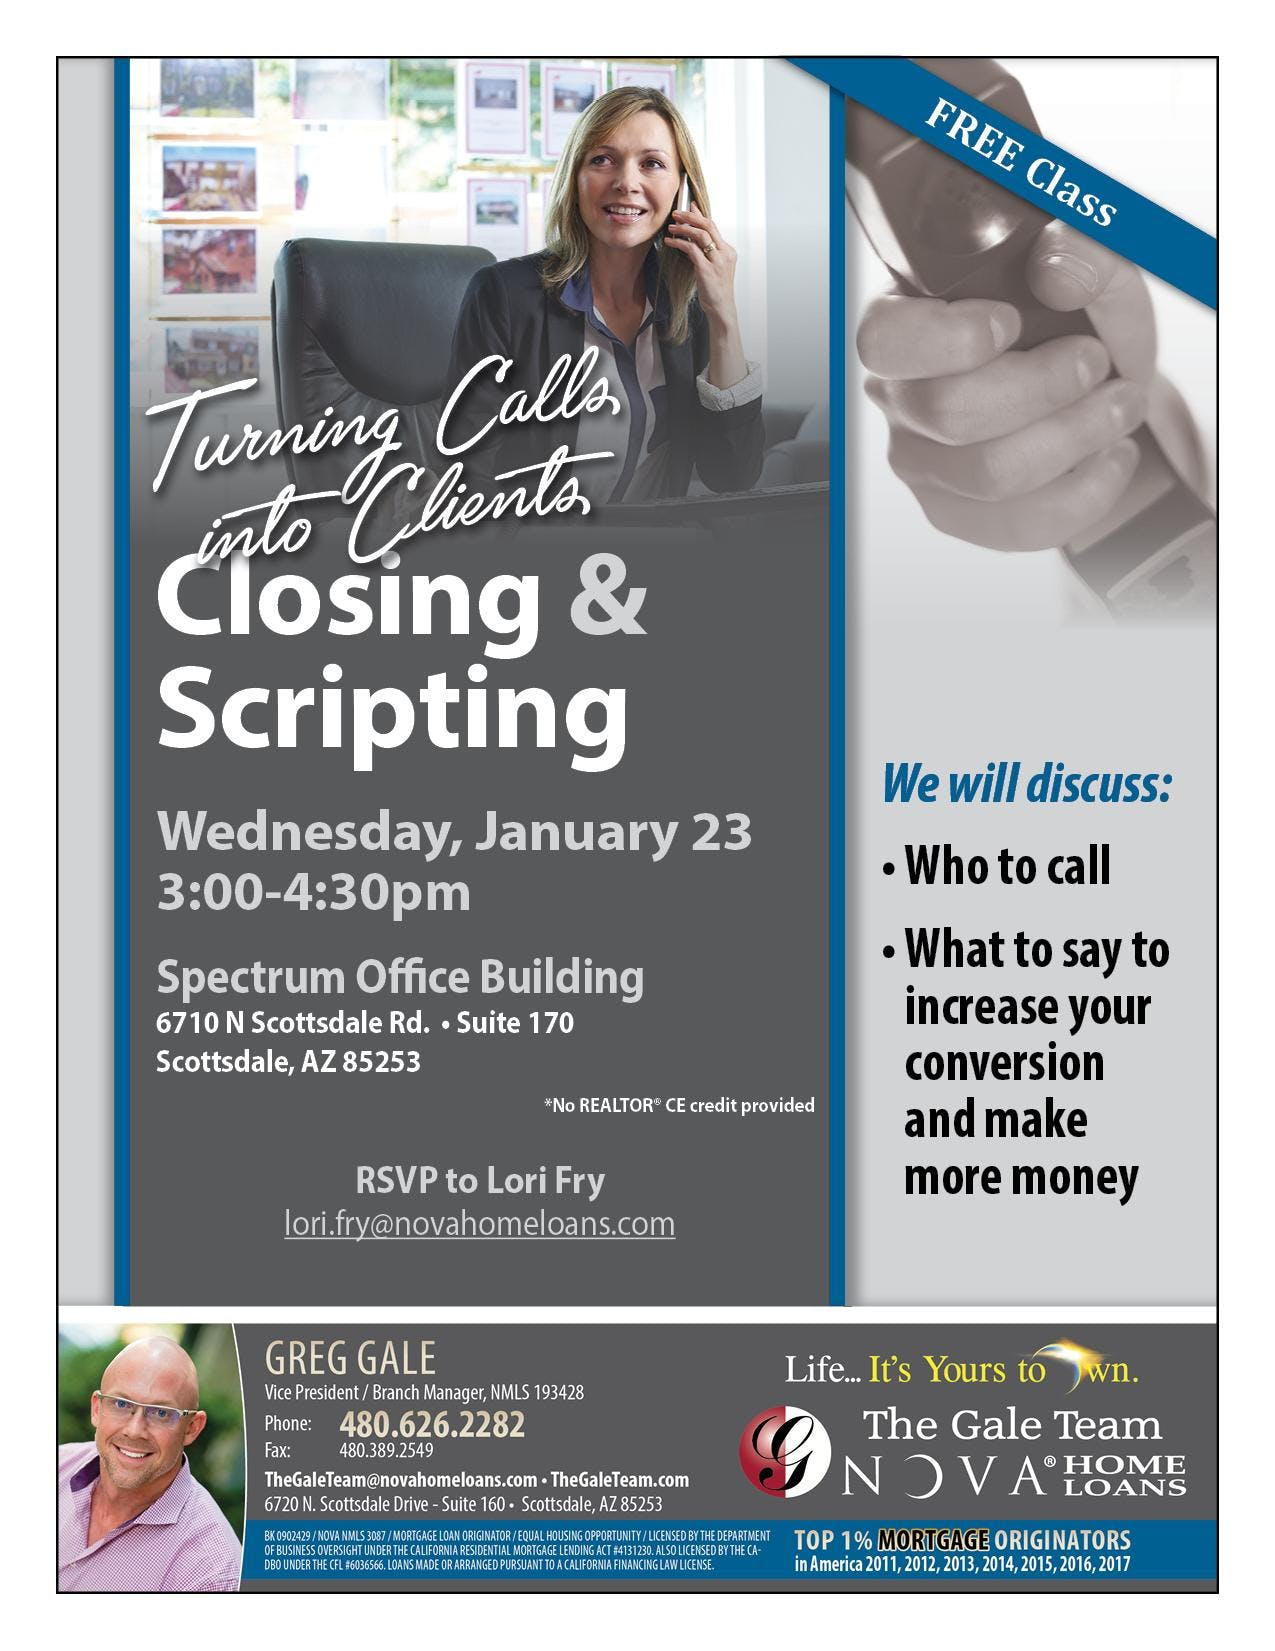 Closing & Scripting - Turning Clients into Closings